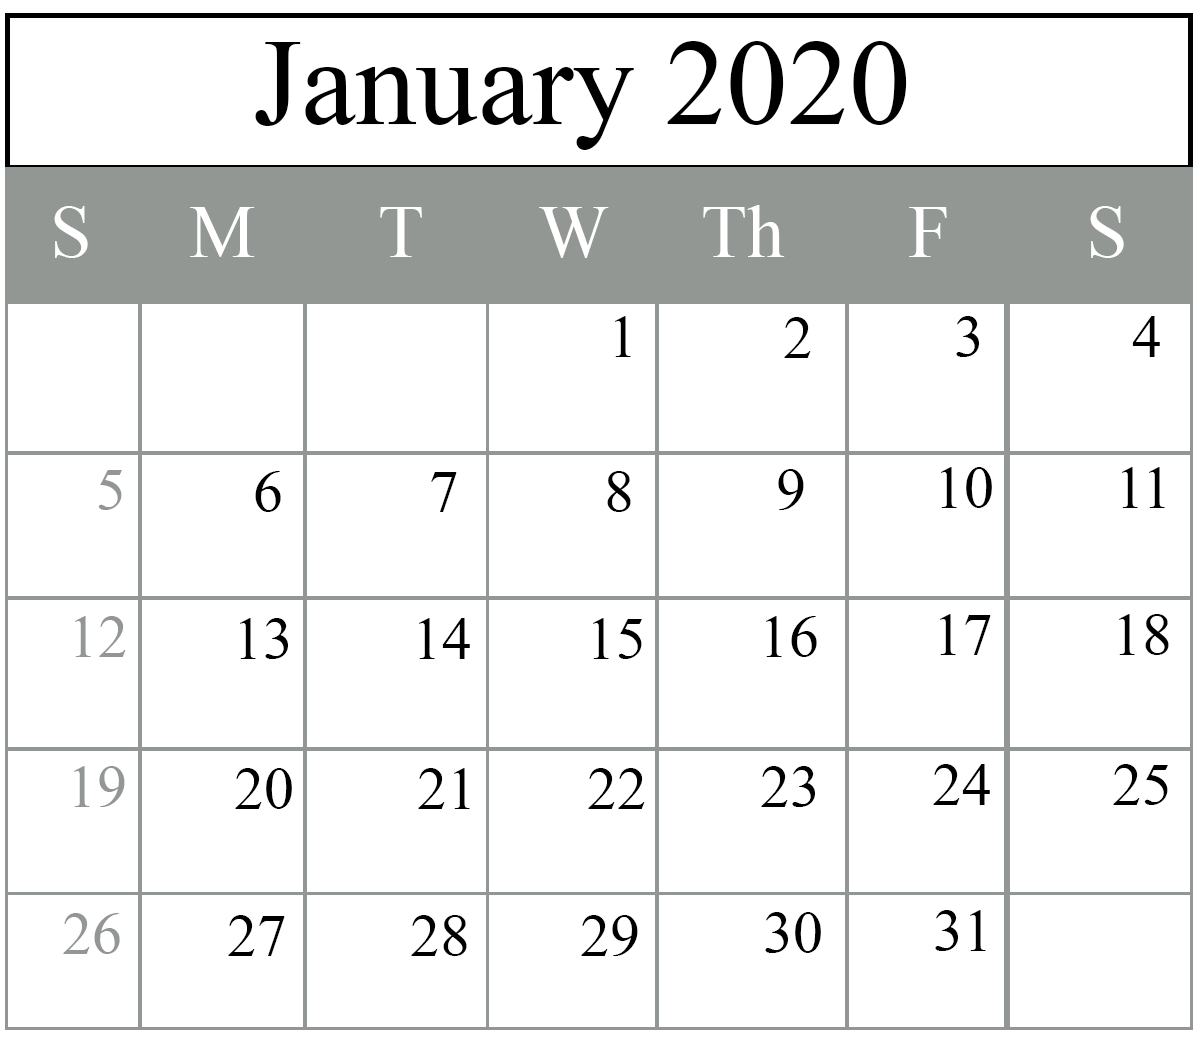 January 2020 Calendar Excel Template